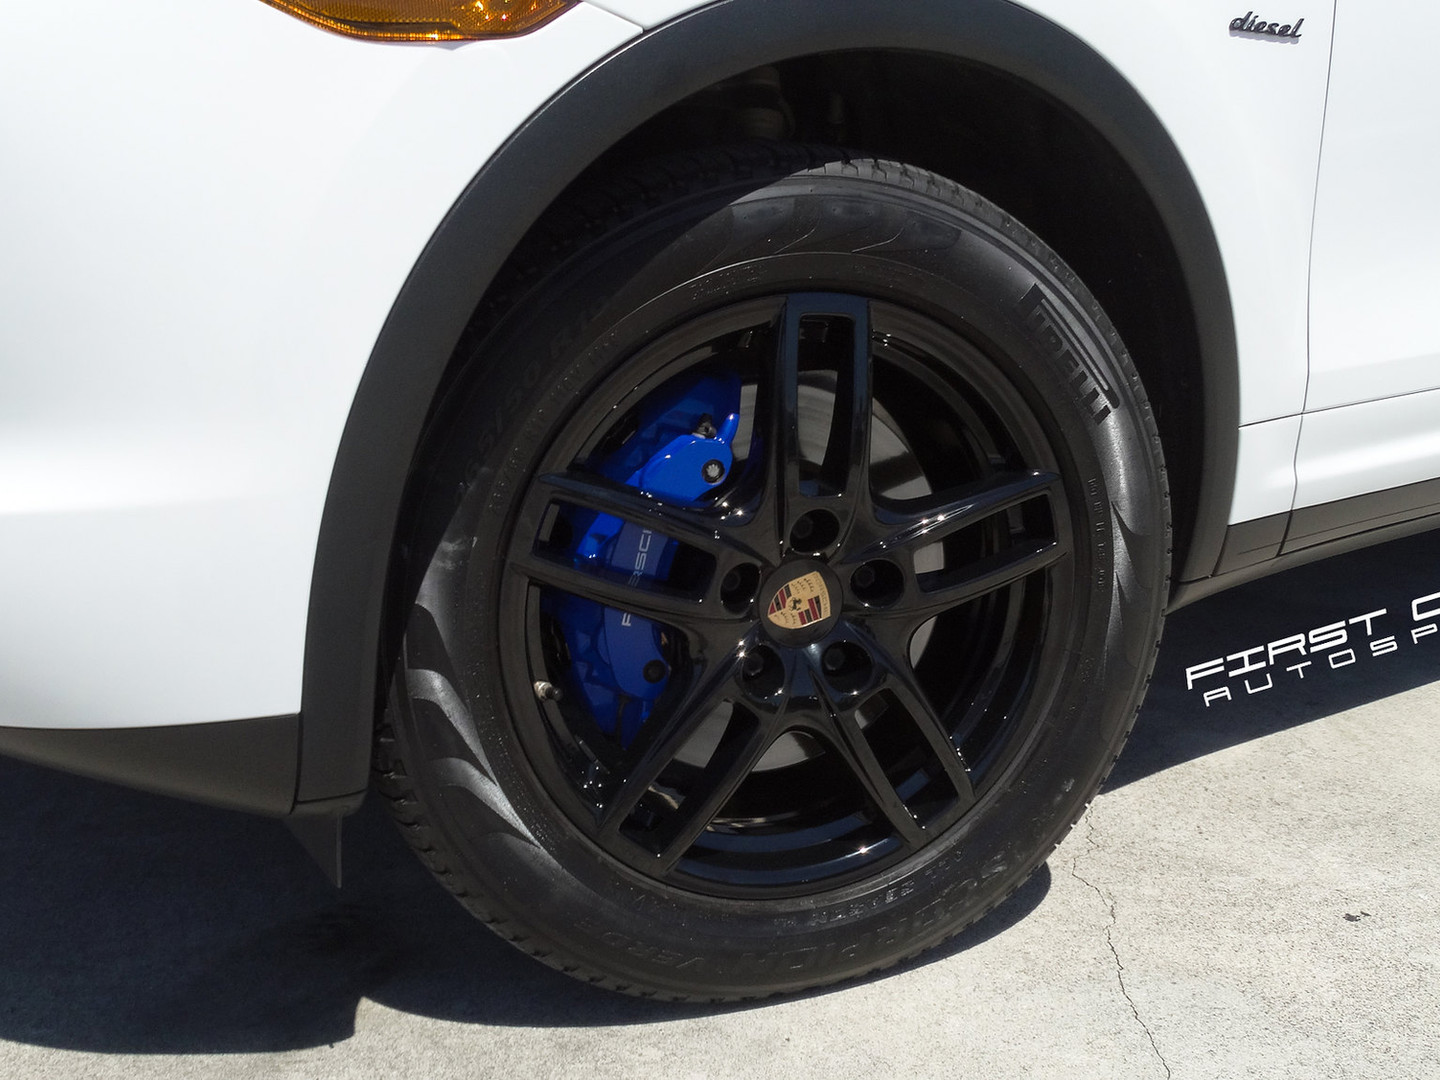 Porsche powder coating Miami gloss black wheel finish